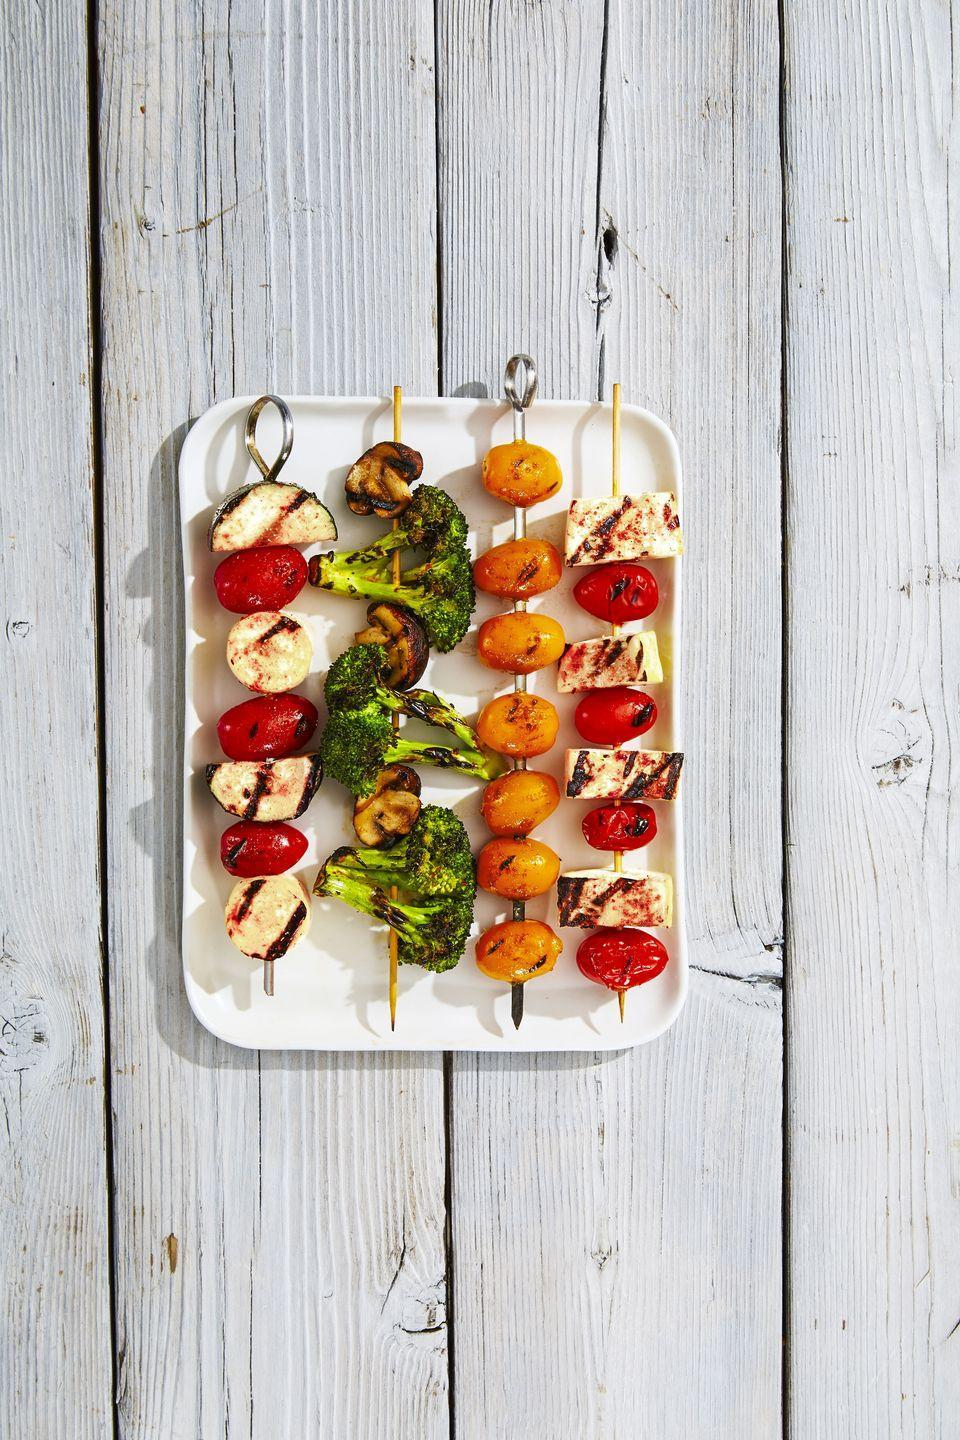 """<p>For an eye-catching veggie platter, coordinate each sewer by color. </p><p><span><a href=""""https://www.goodhousekeeping.com/food-recipes/a39273/rainbow-veggie-kabobs-recipe/"""" rel=""""nofollow noopener"""" target=""""_blank"""" data-ylk=""""slk:Get the recipe for Rainbow Veggie Kabobs »"""" class=""""link rapid-noclick-resp"""">Get the recipe for Rainbow Veggie Kabobs »</a></span><br></p>"""